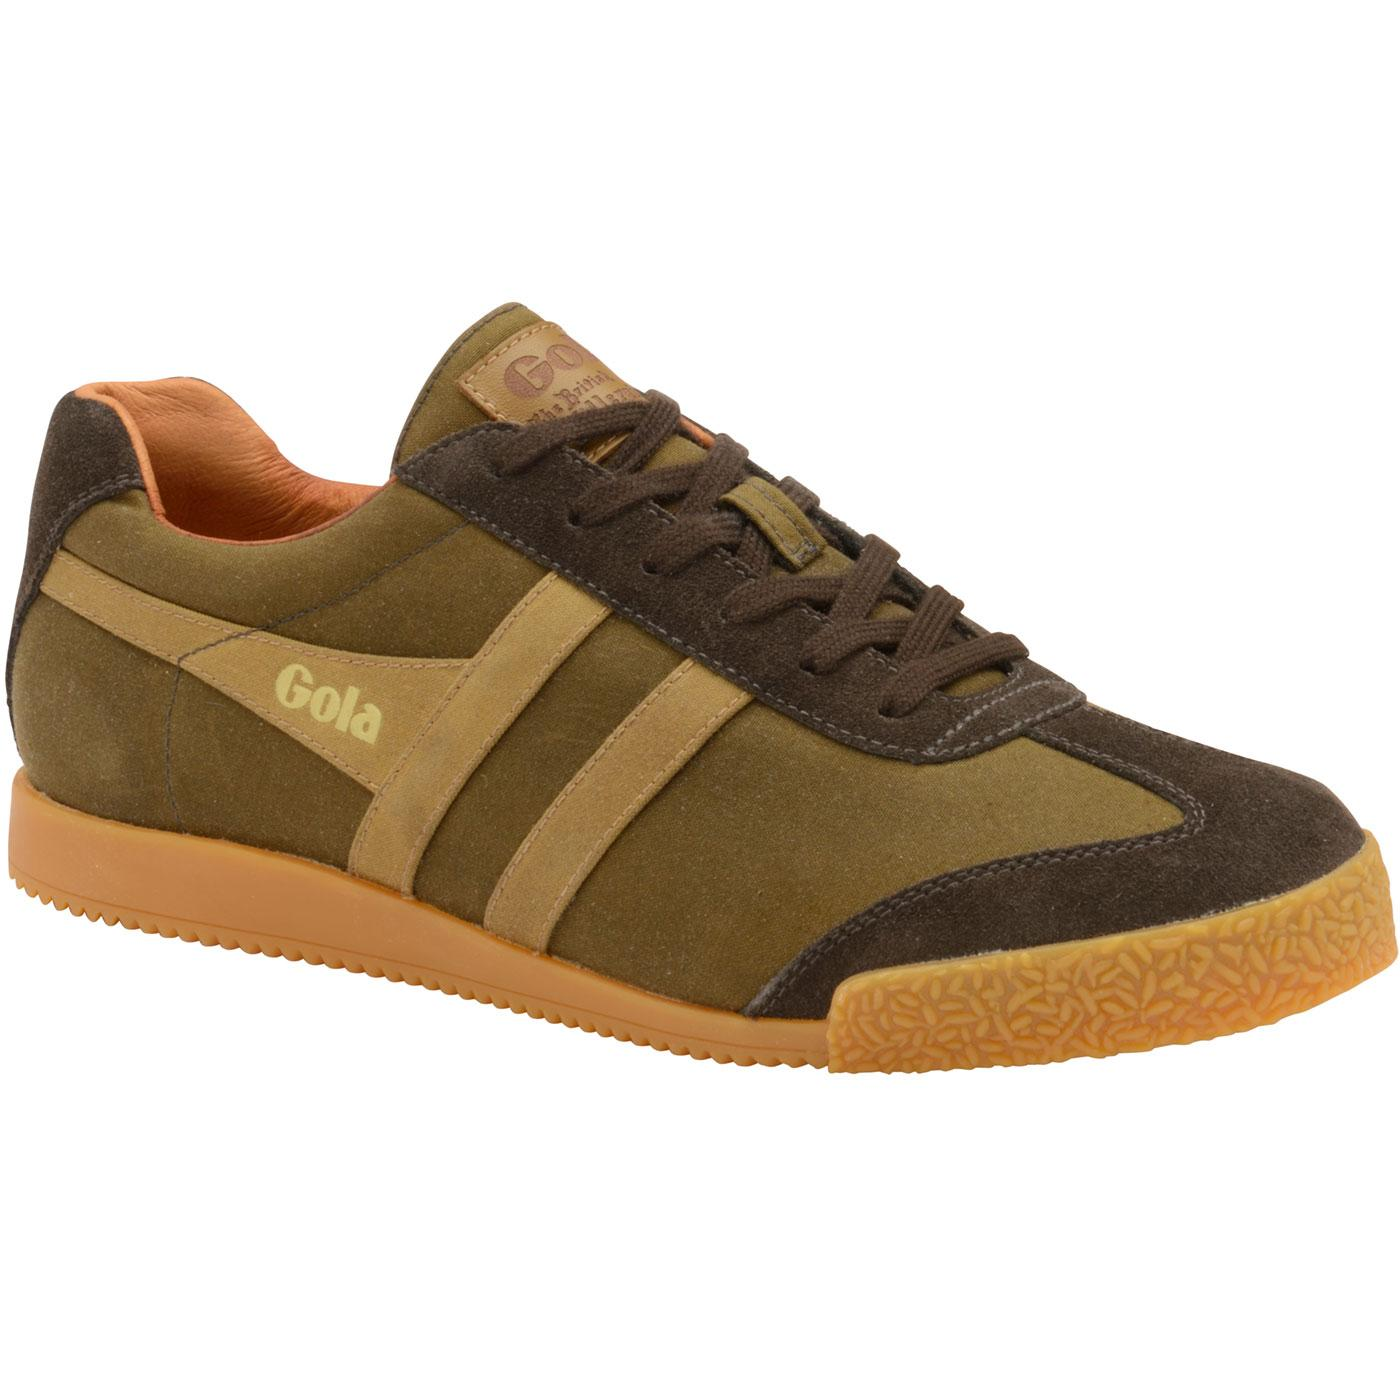 Harrier Millerain GOLA Retro Trainers OLIVE/BROWN